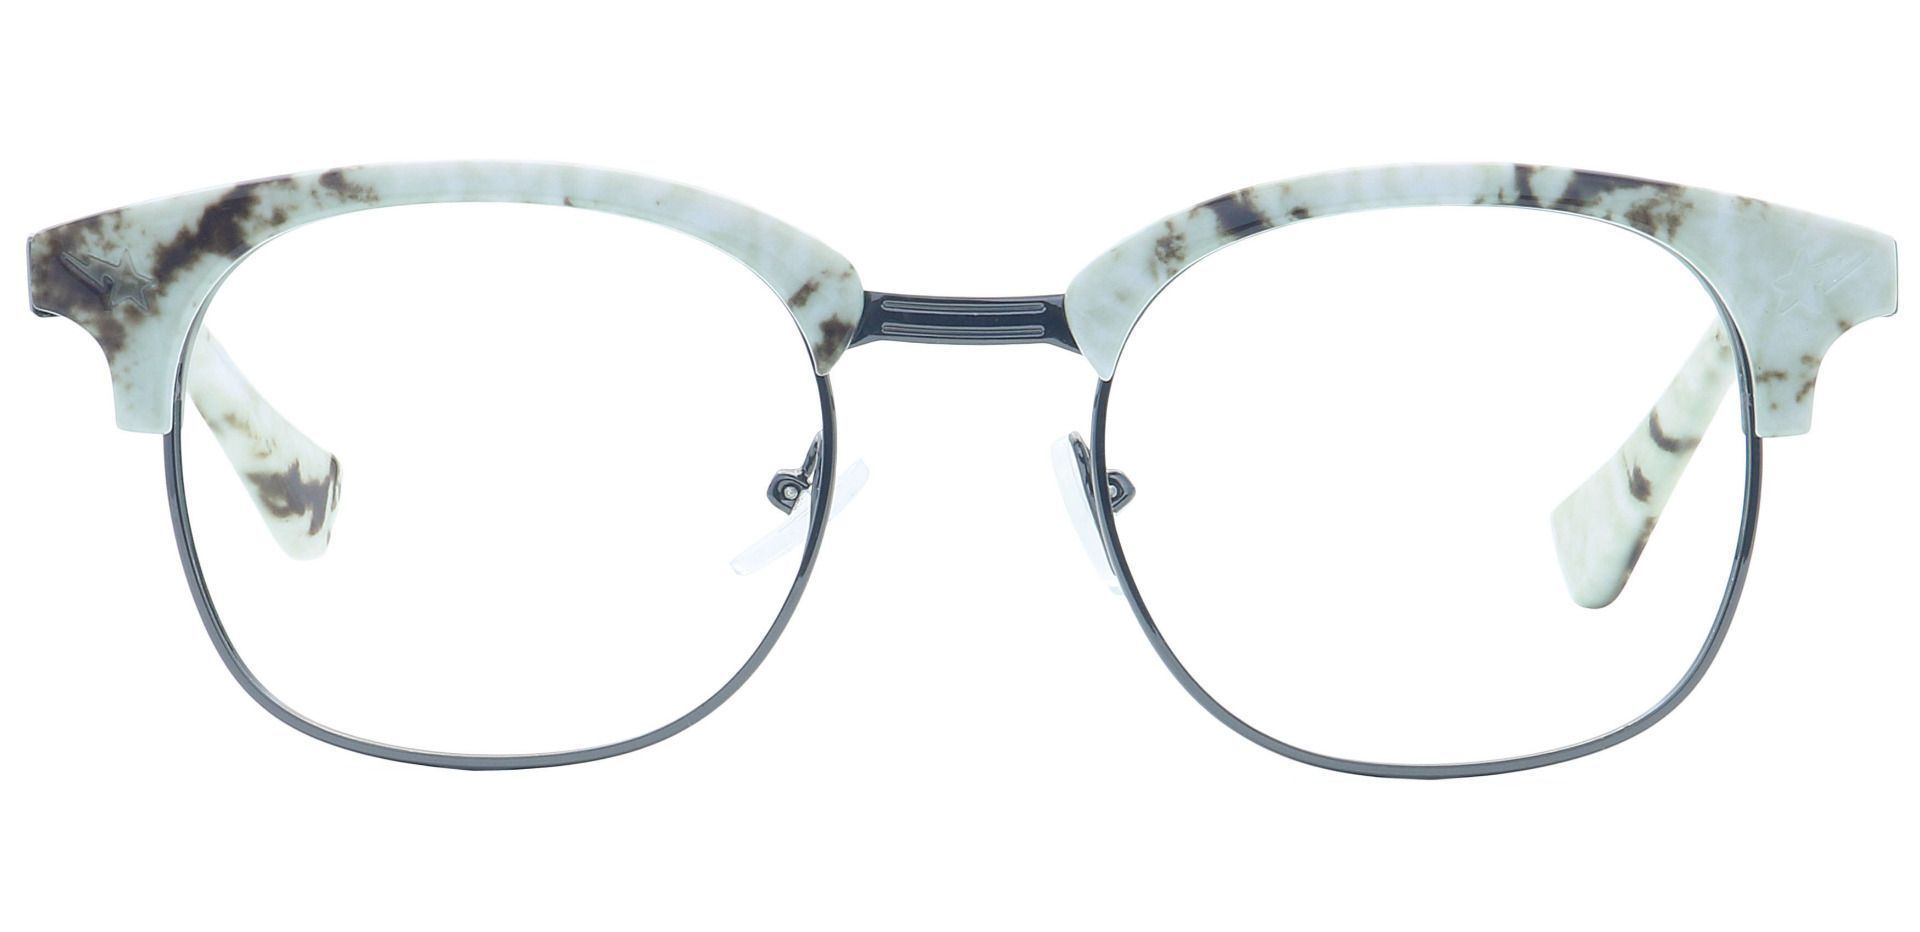 Neptune Browline Prescription Glasses - White